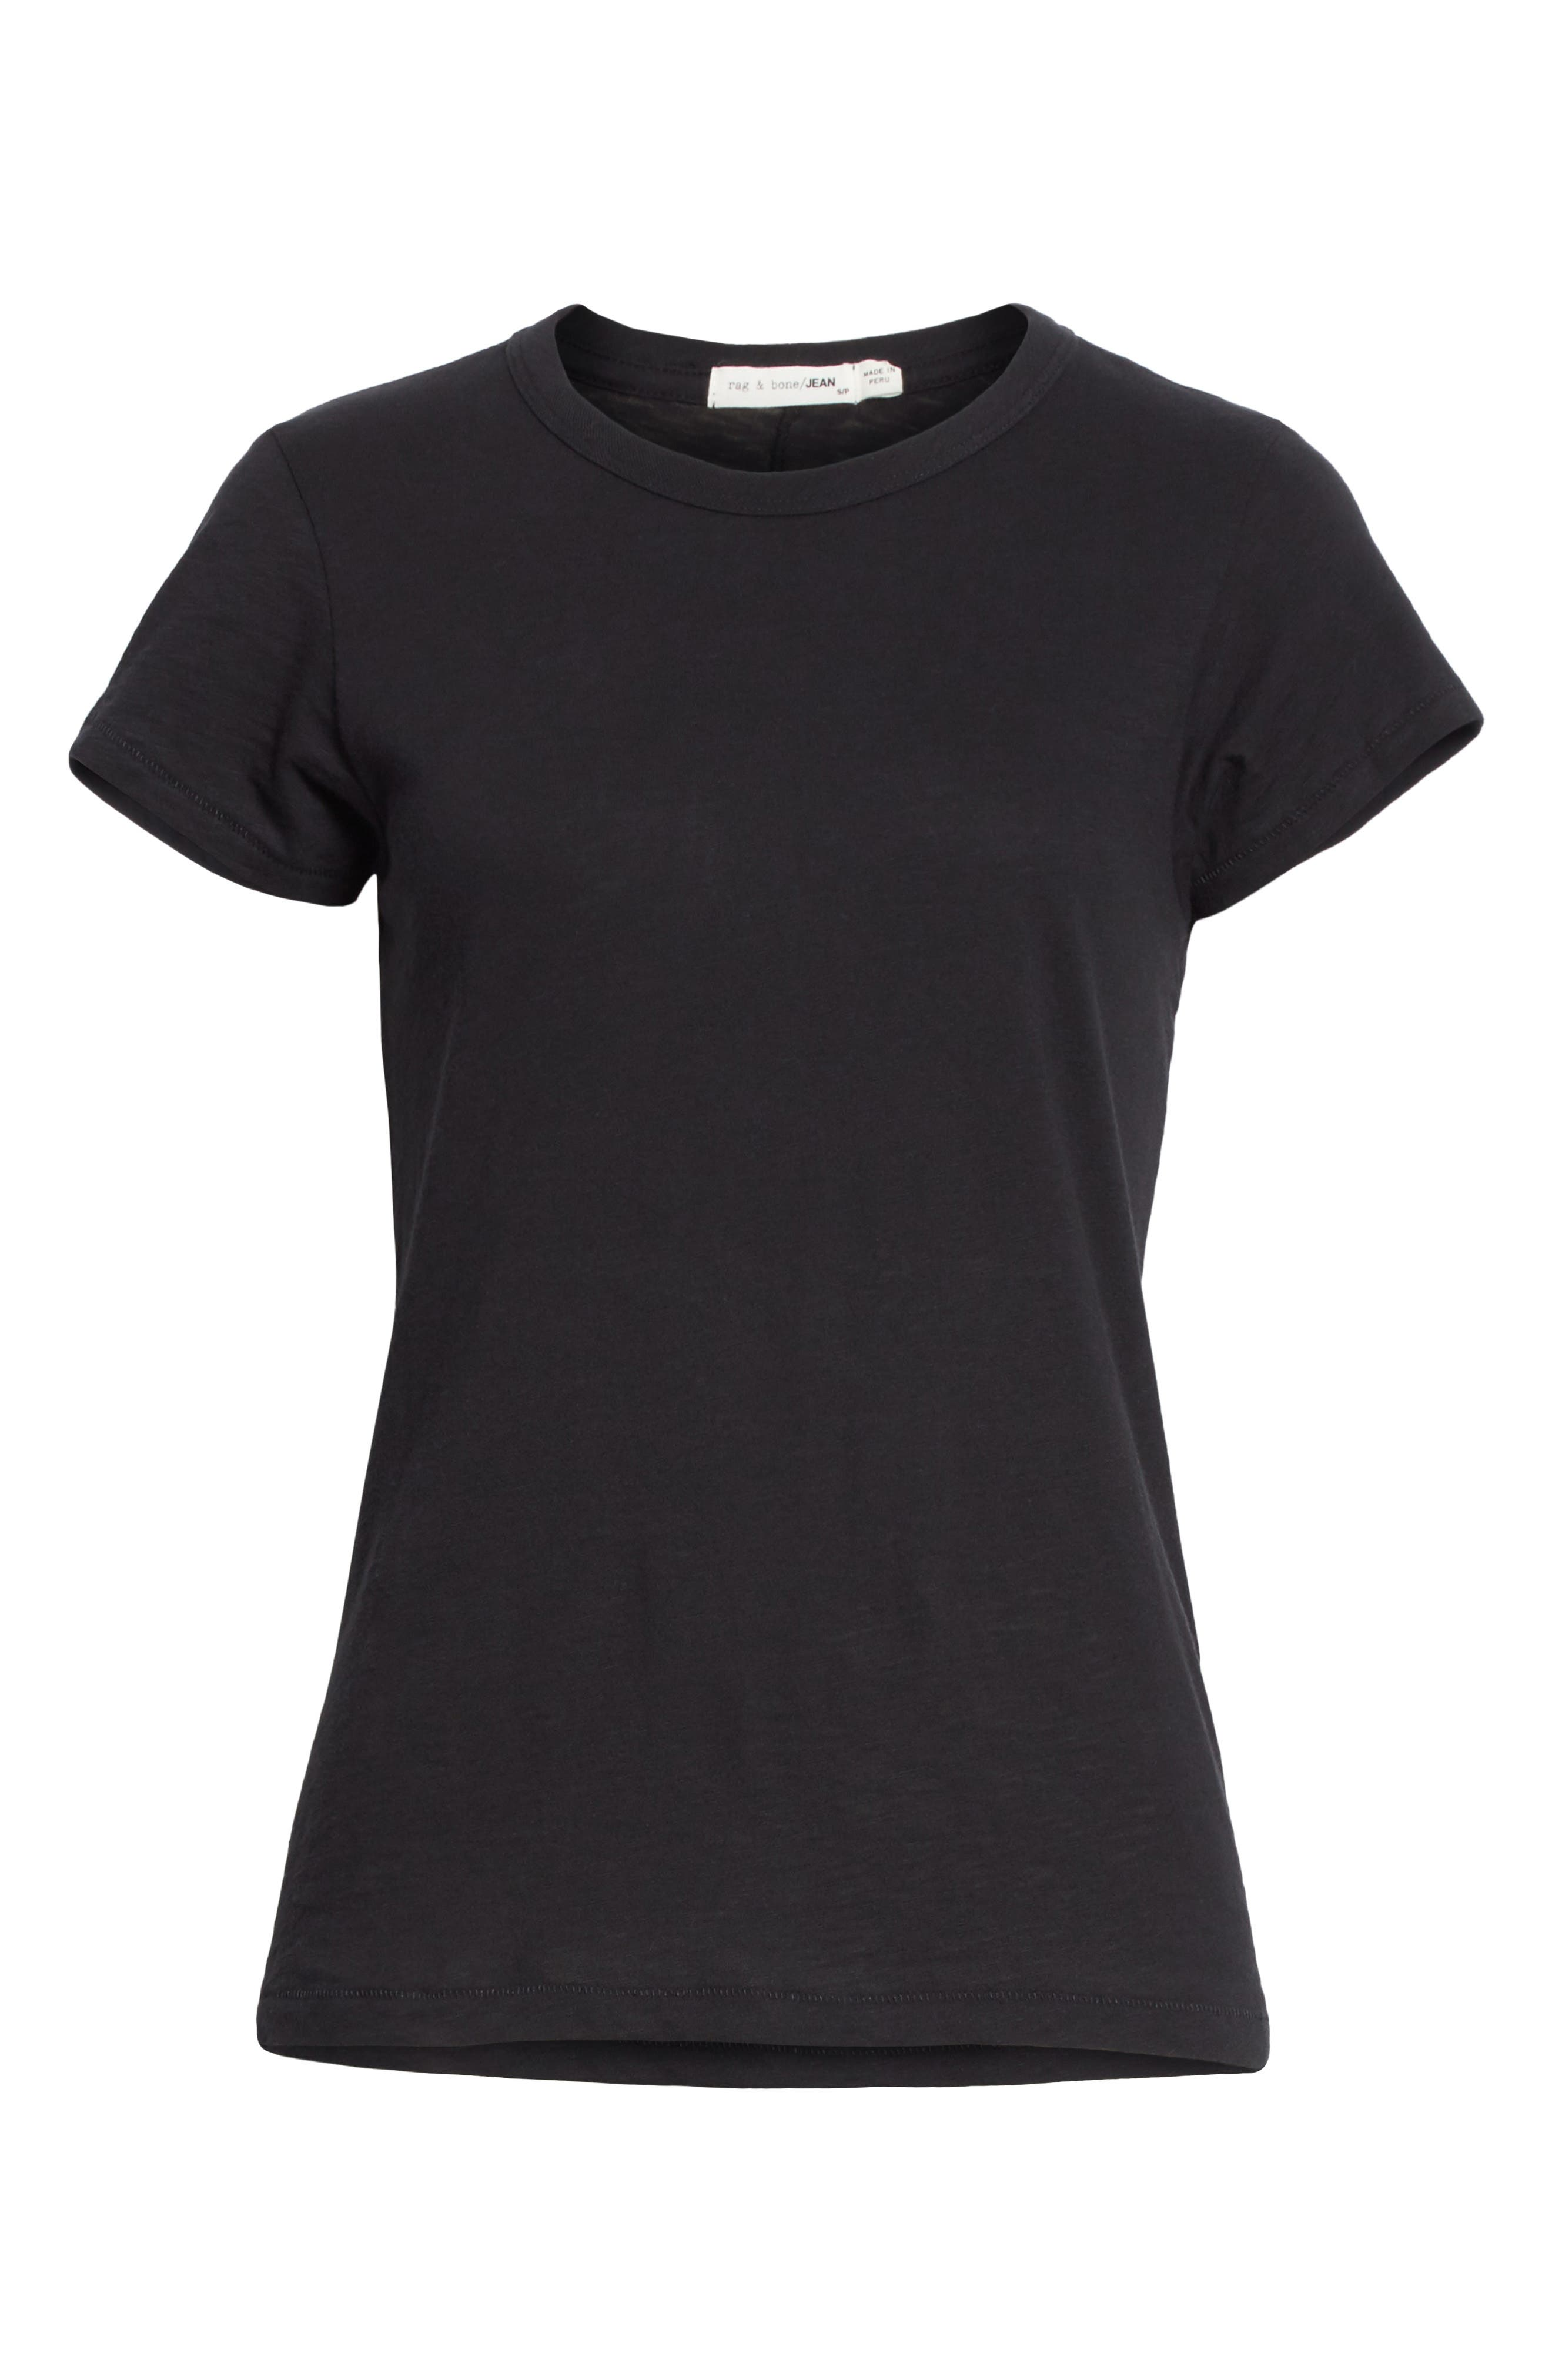 rag & bone The Tee,                             Alternate thumbnail 6, color,                             001